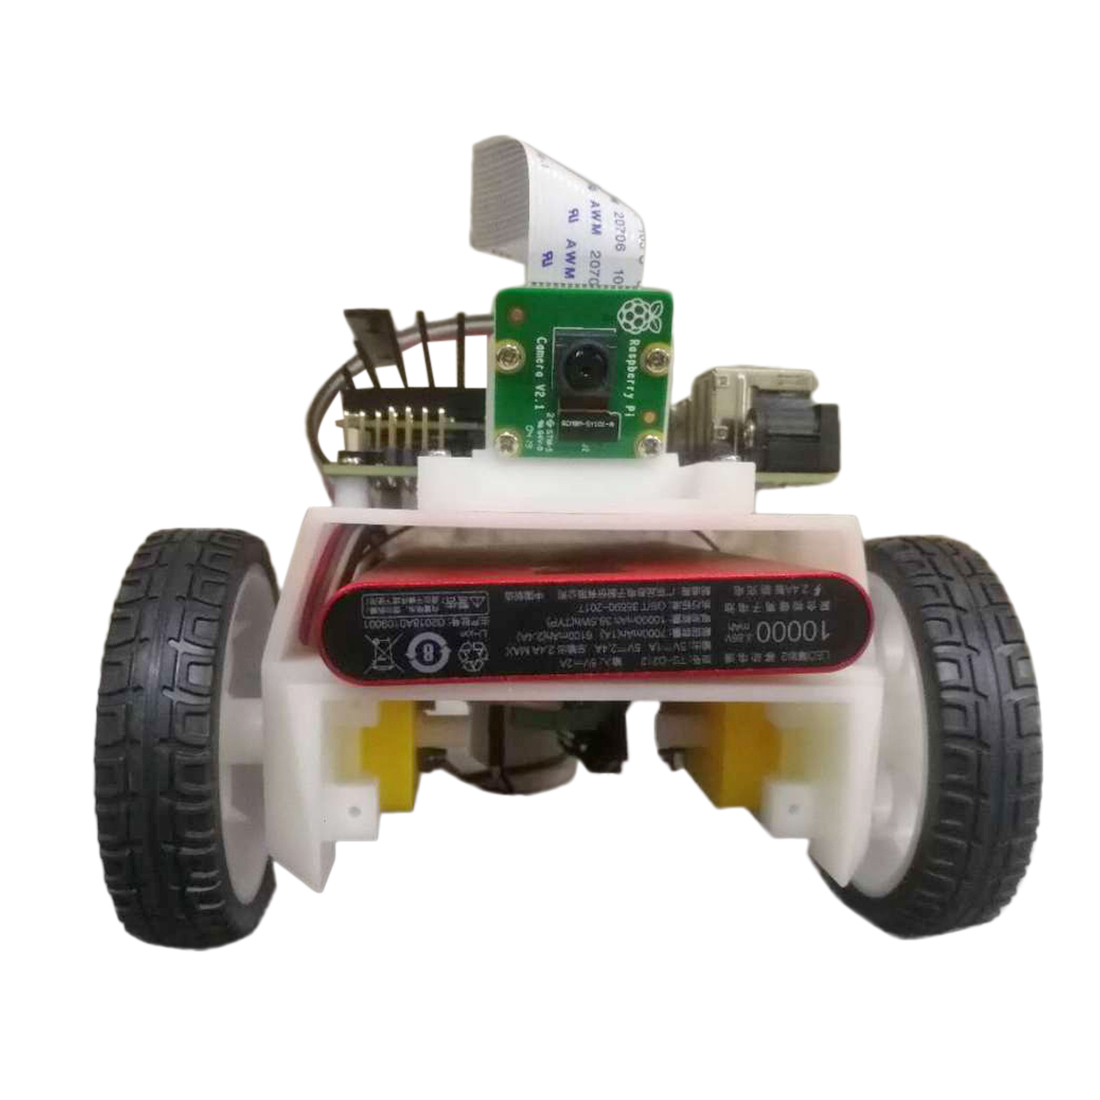 Hot Discovery Toys Programmable Automatic Drive Robot Car Kit Educational Learning Kit Model Educational Toy Gift For Kid Adult